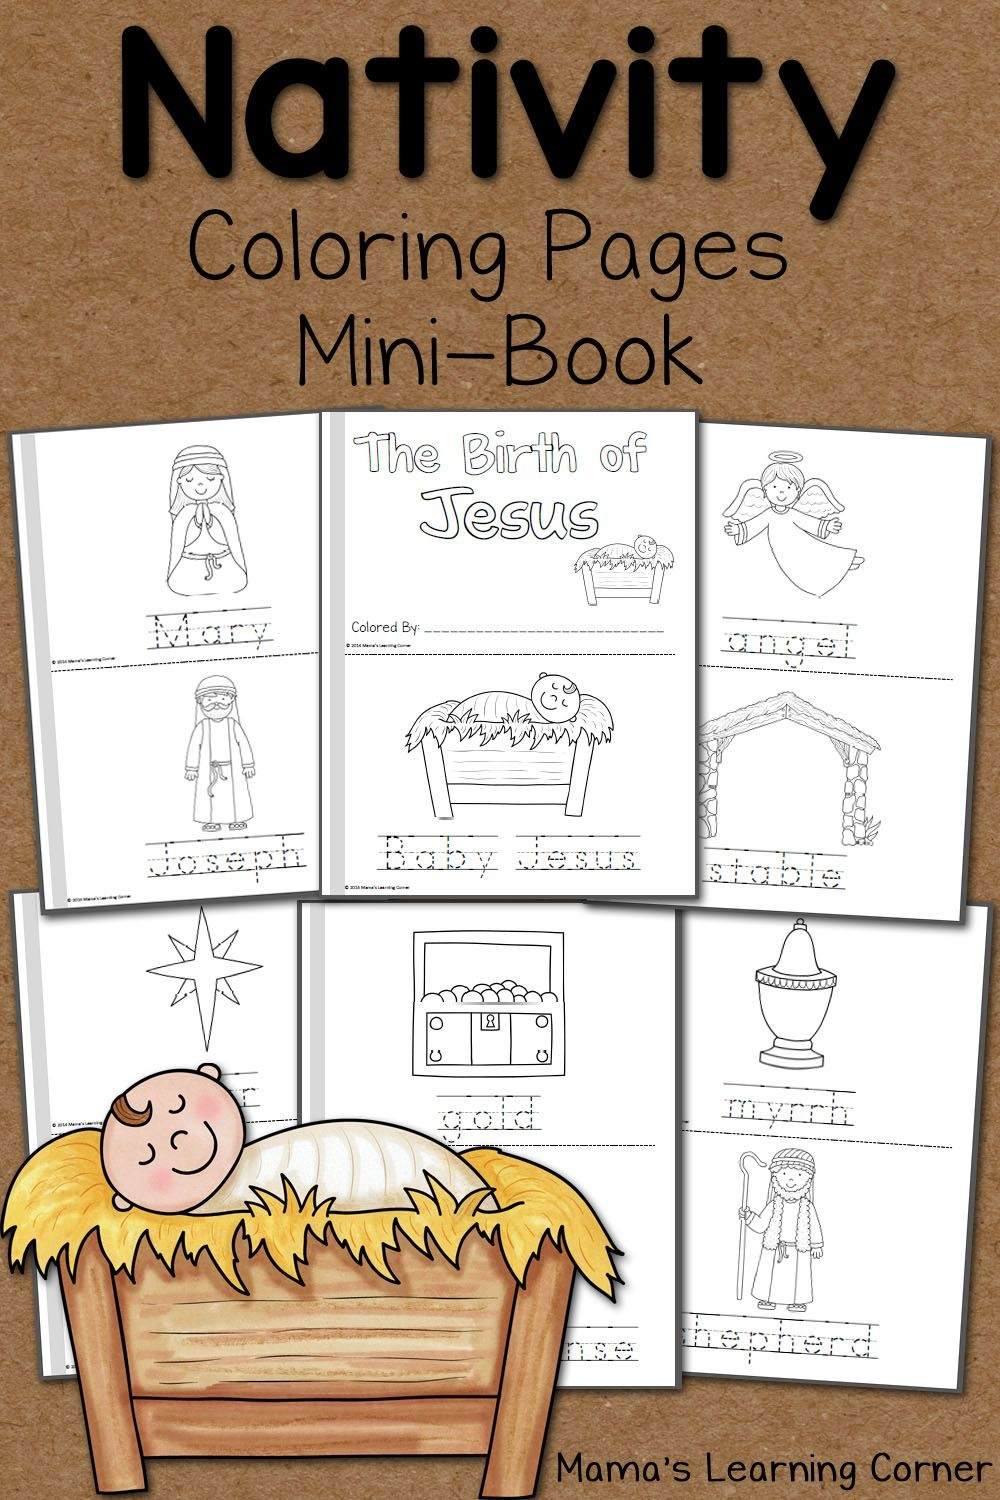 Nativity Coloring Pages   Printables   Nativity Coloring Pages - Free Printable Christmas Story Coloring Pages